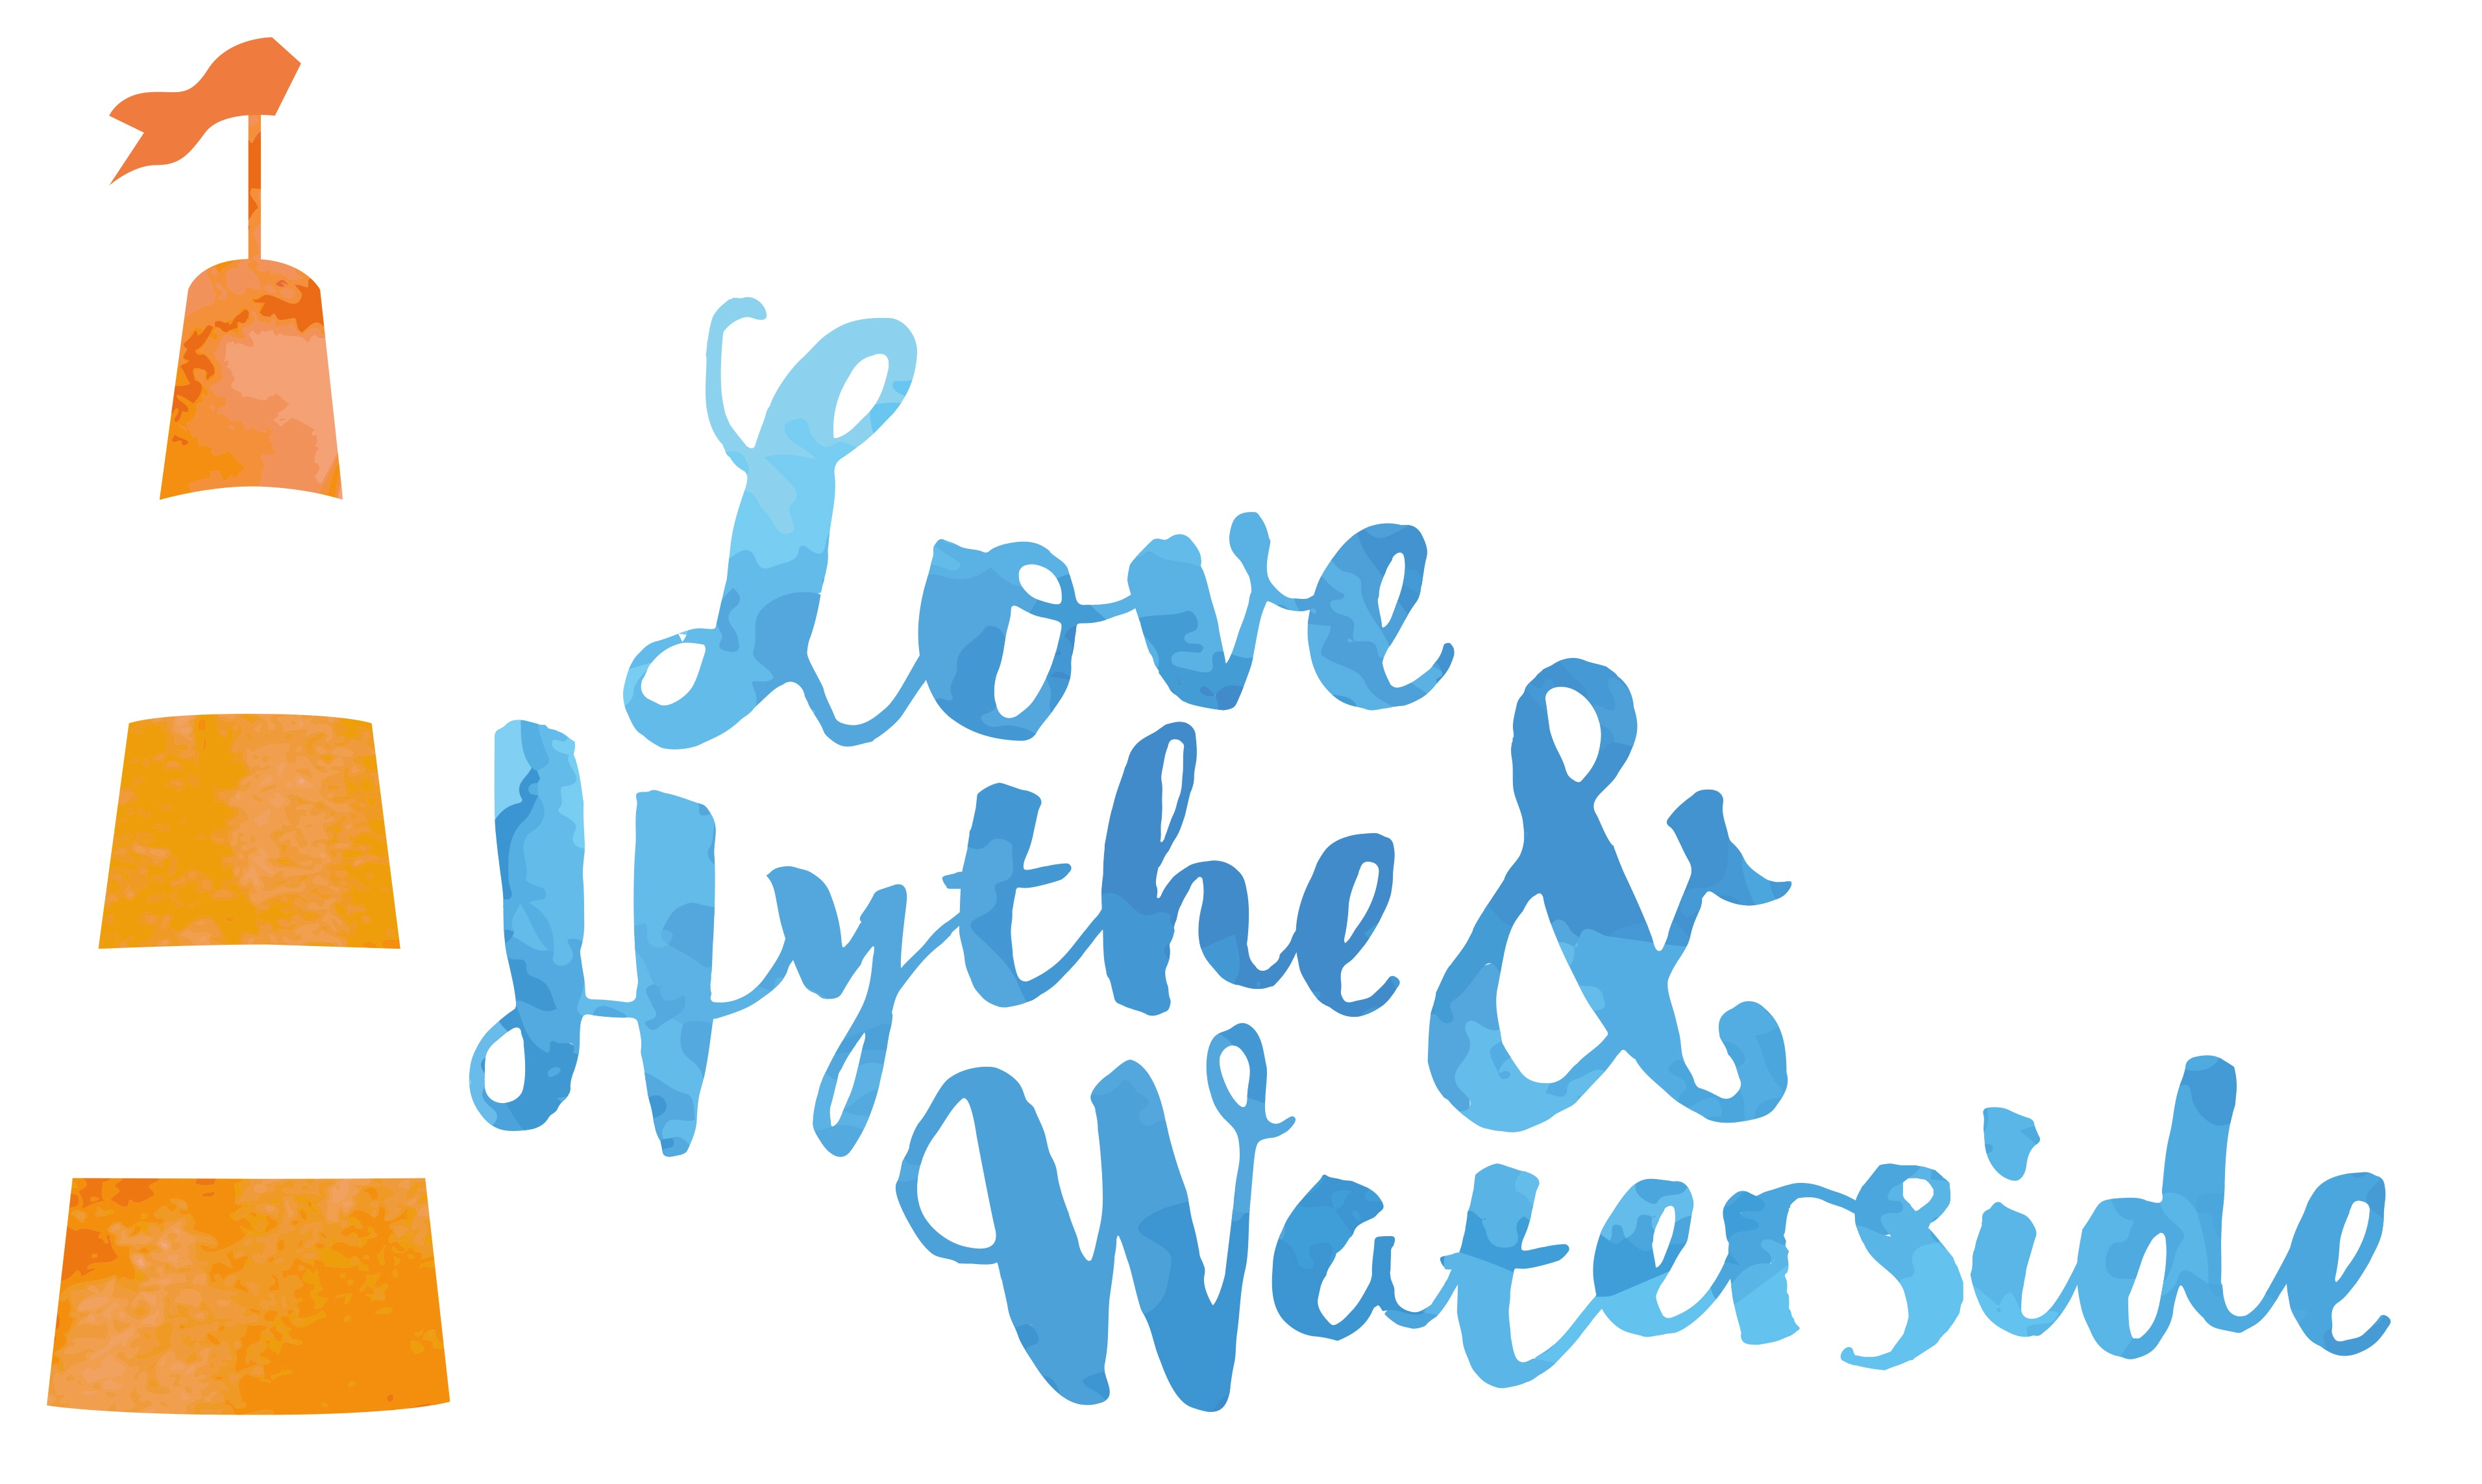 The Love Hythe & Waterside logo